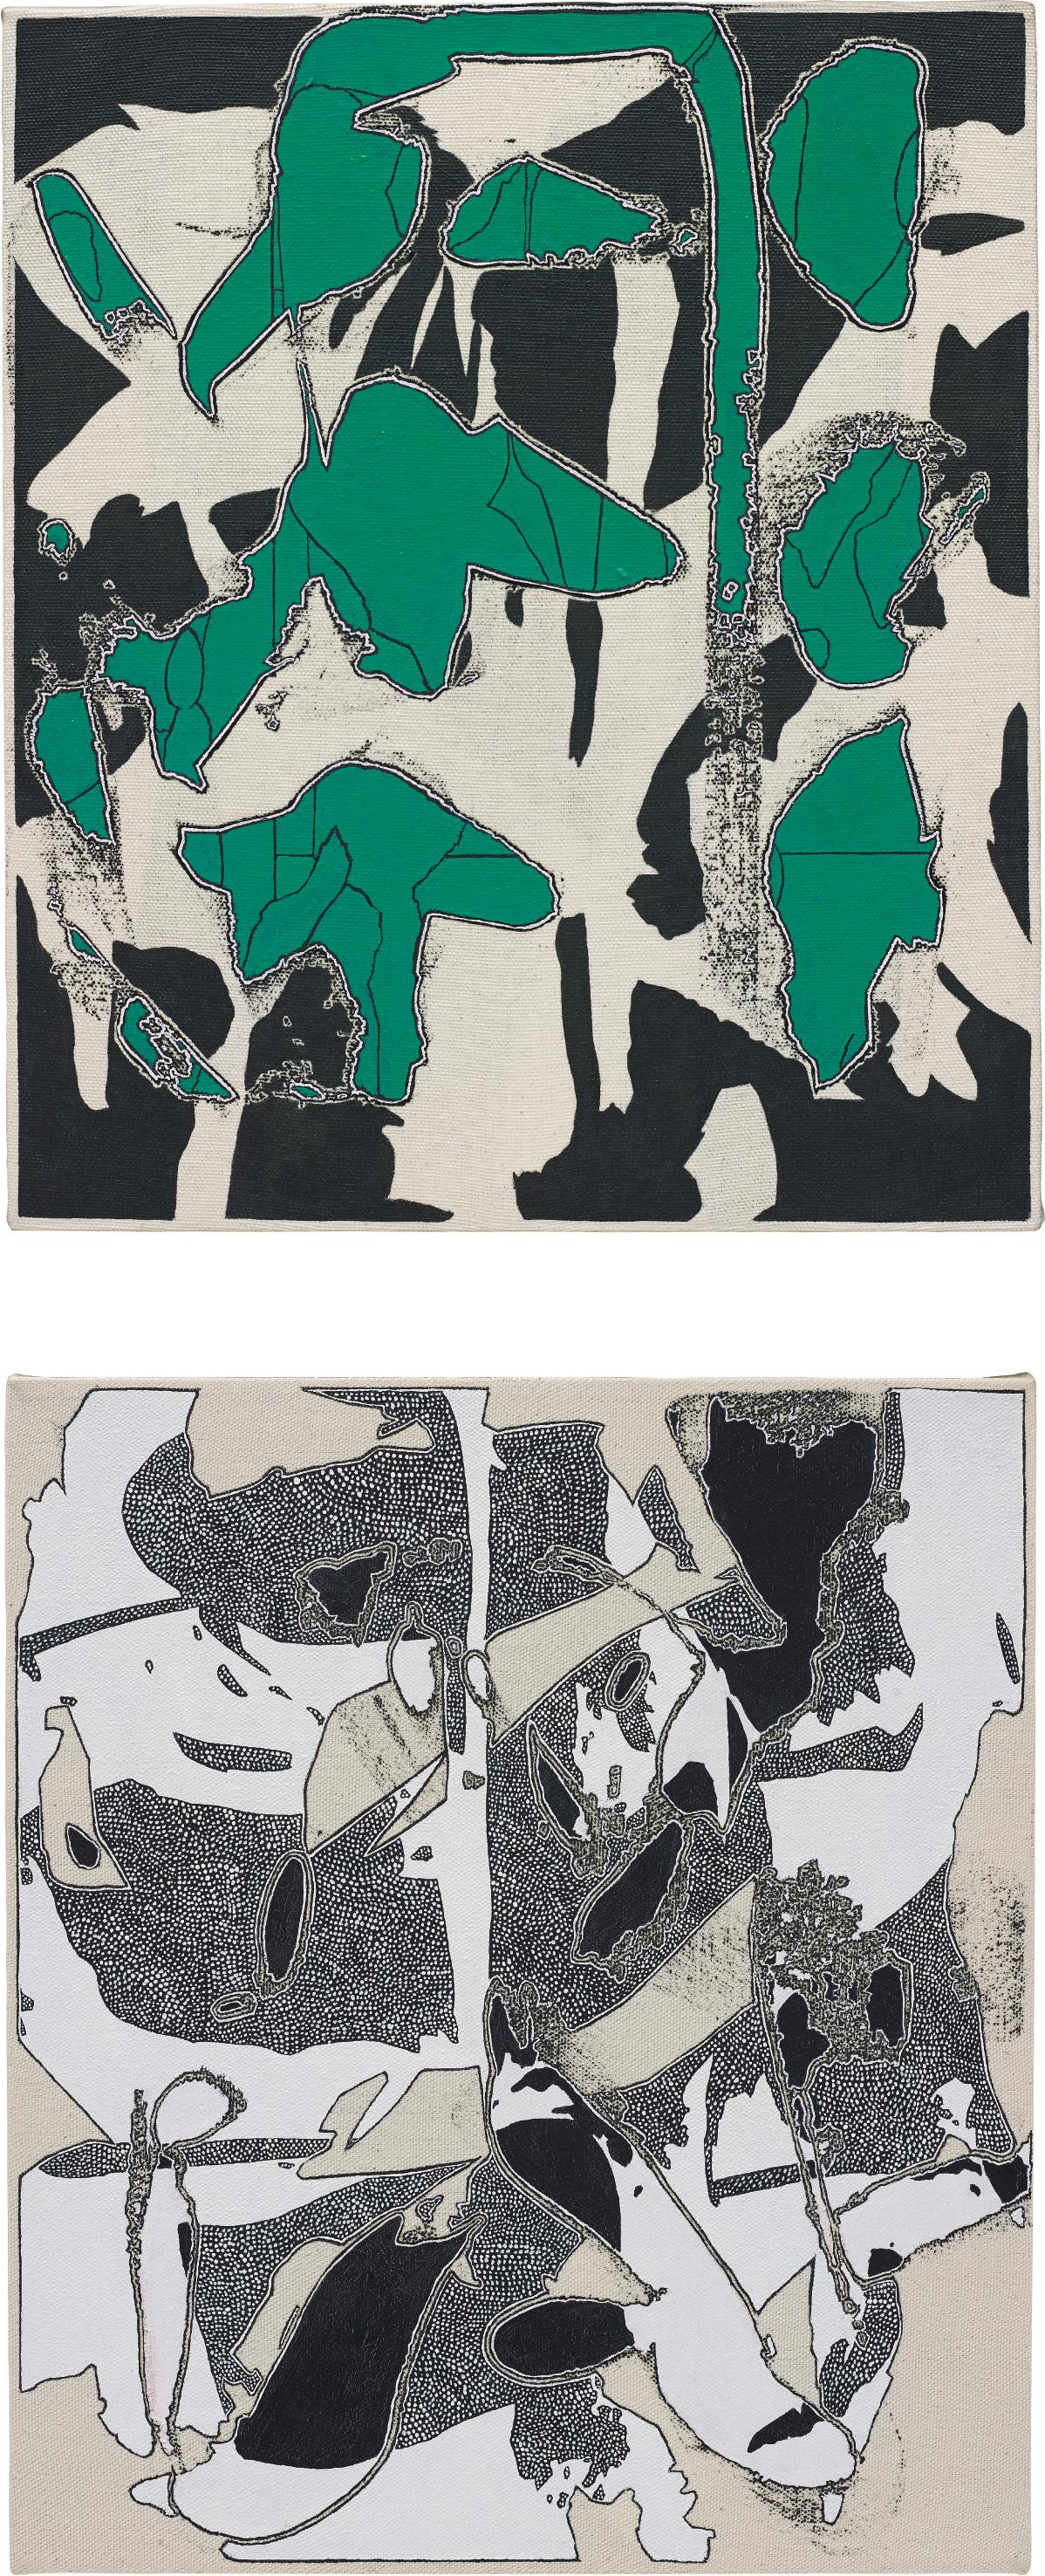 Zak Prekop-2 works: (i) Reversal with Green; (ii) Unmeasured Pattern-2014